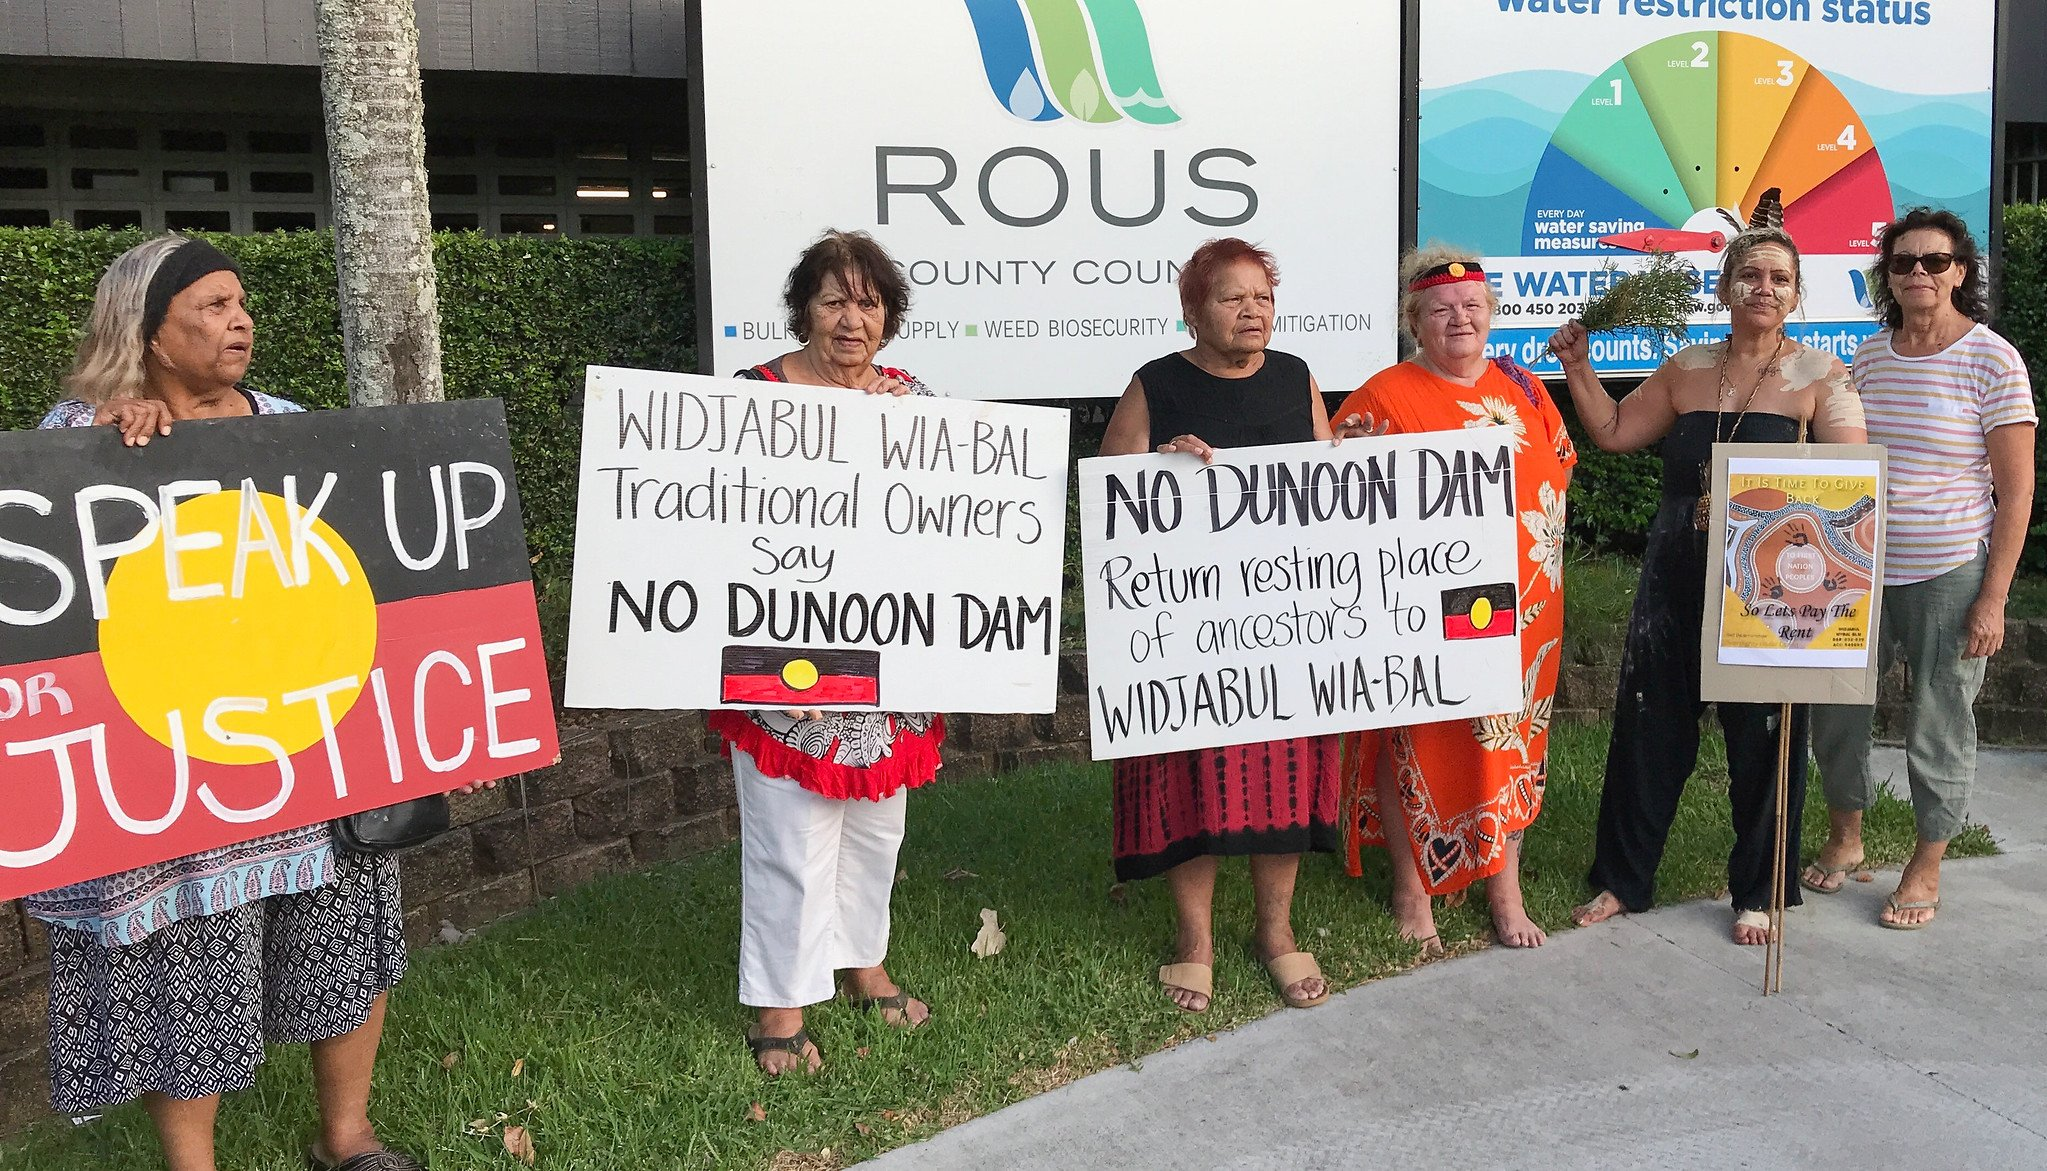 No means no, say traditional owners